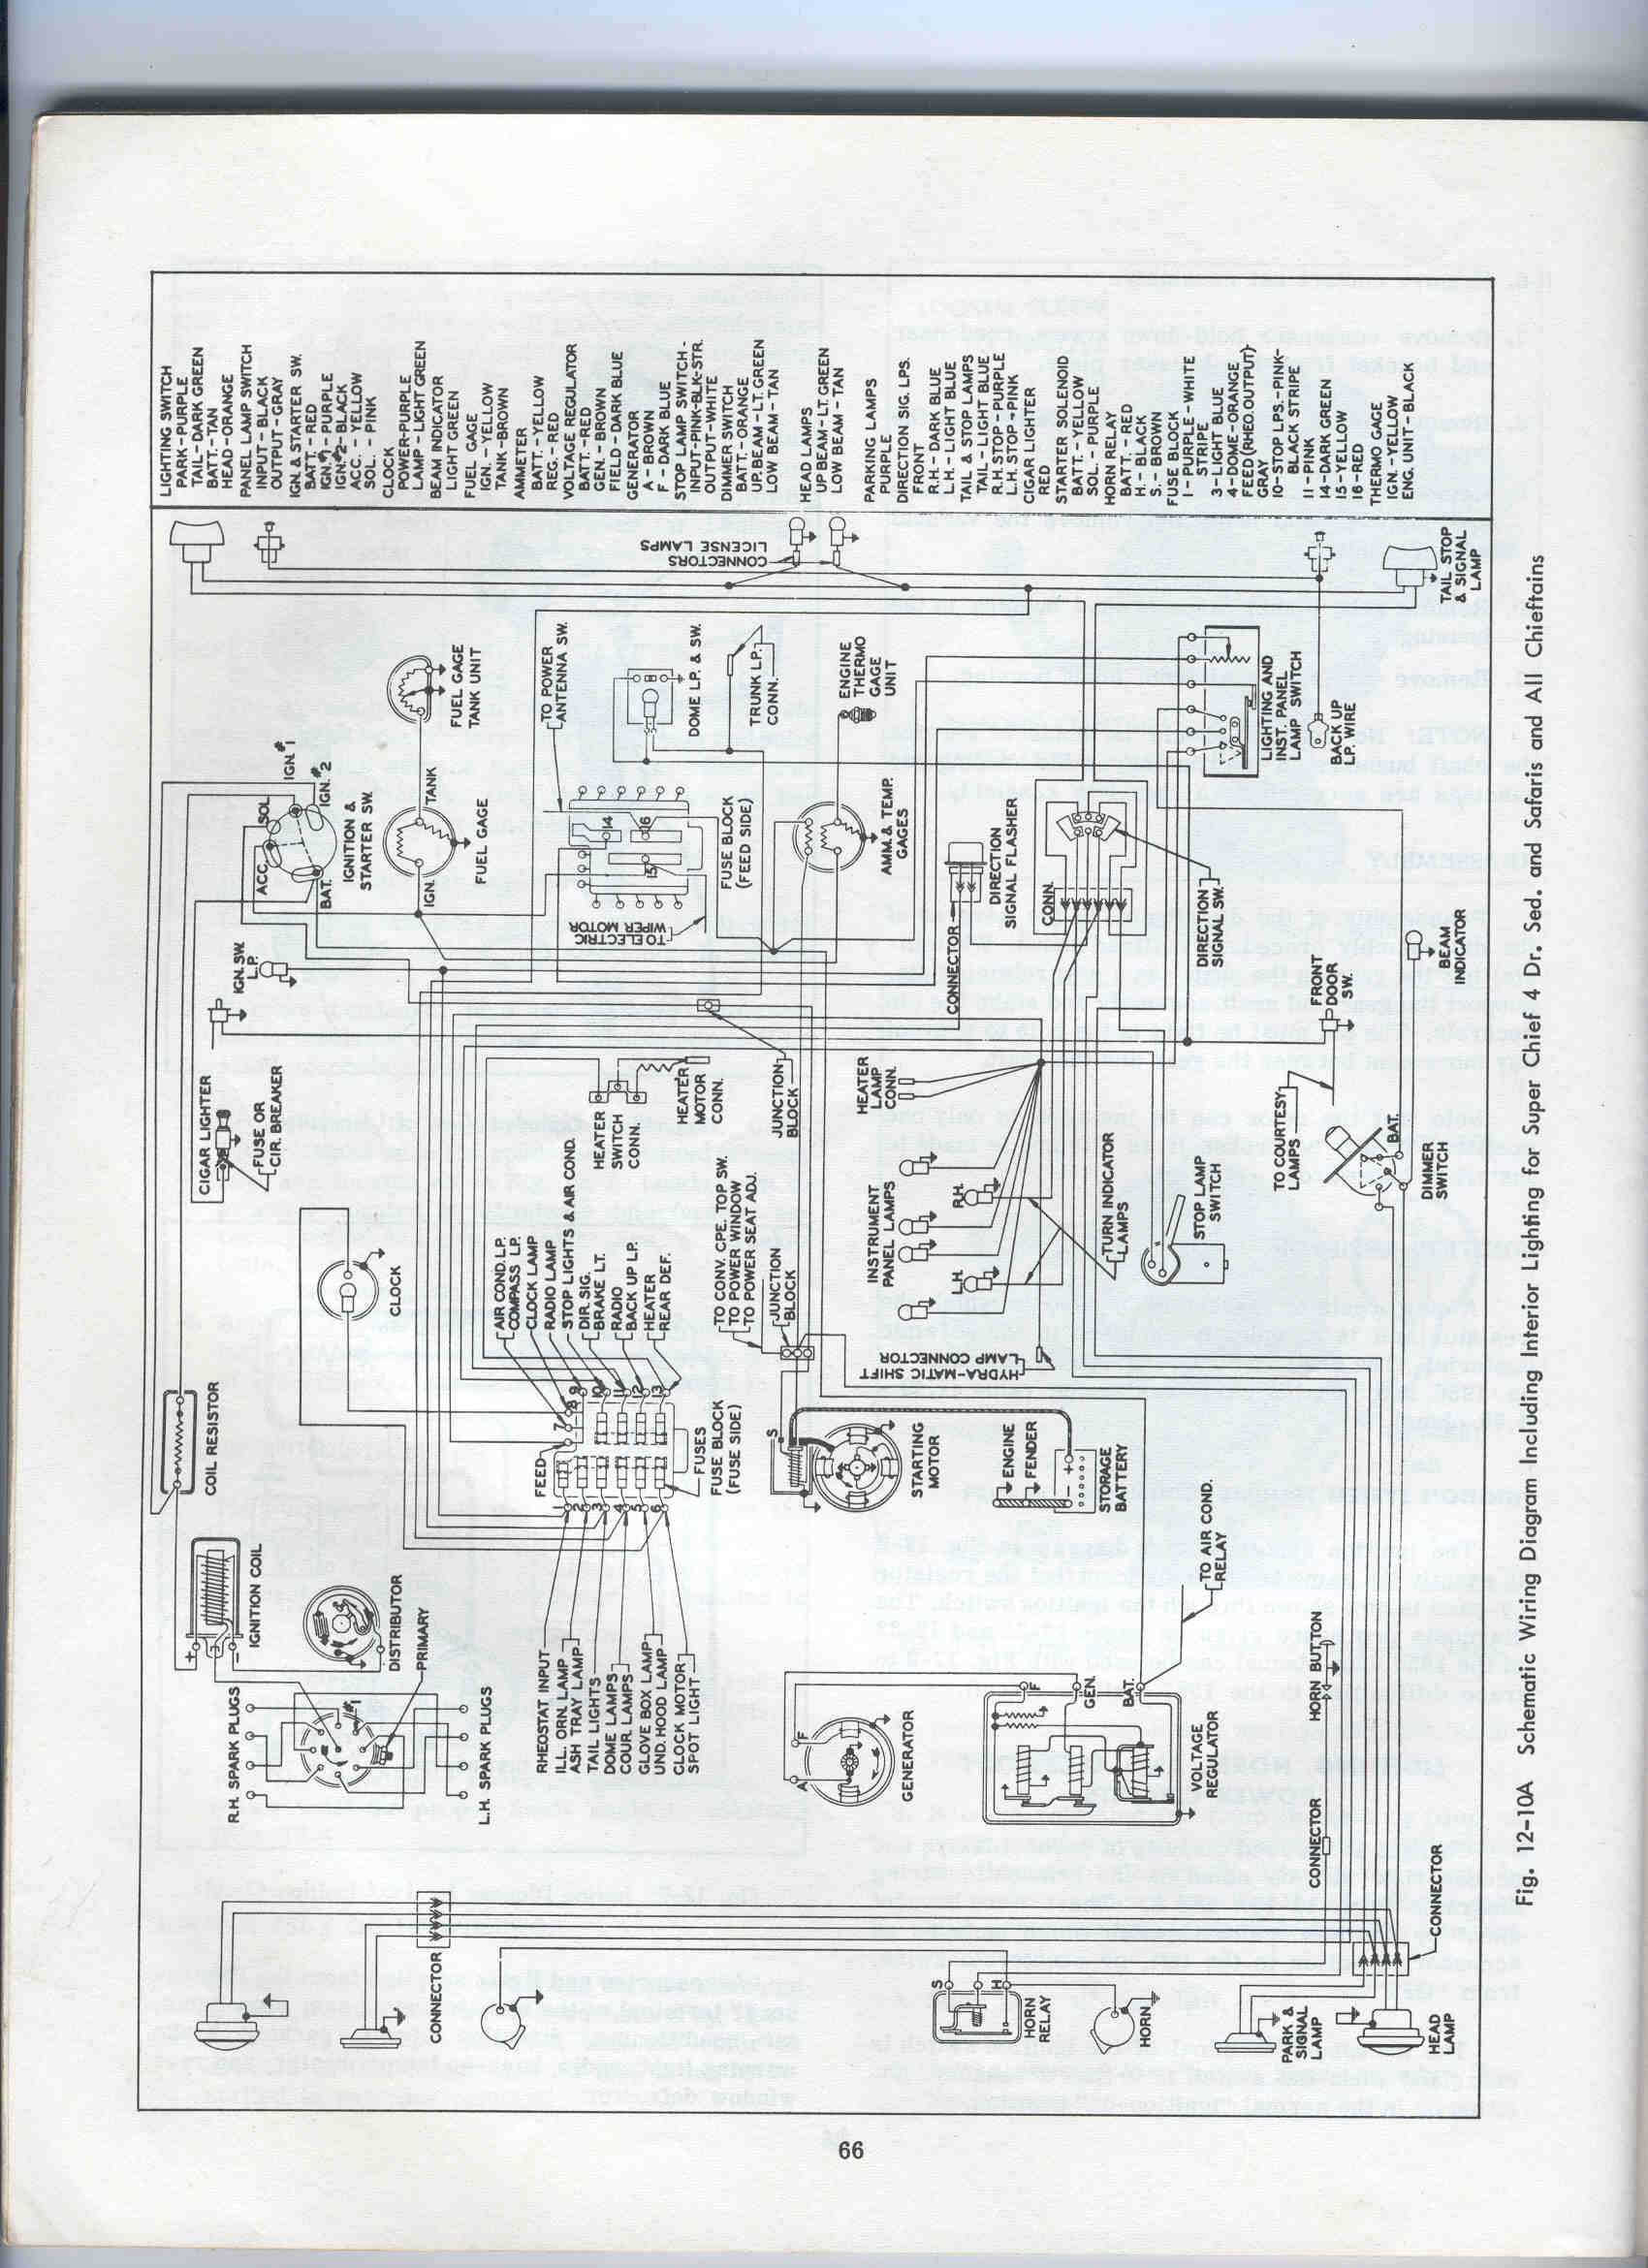 ilk 1953 wiring diagrams cadillac basic trailer wiring diagram 1954 Pontiac Chieftain at n-0.co